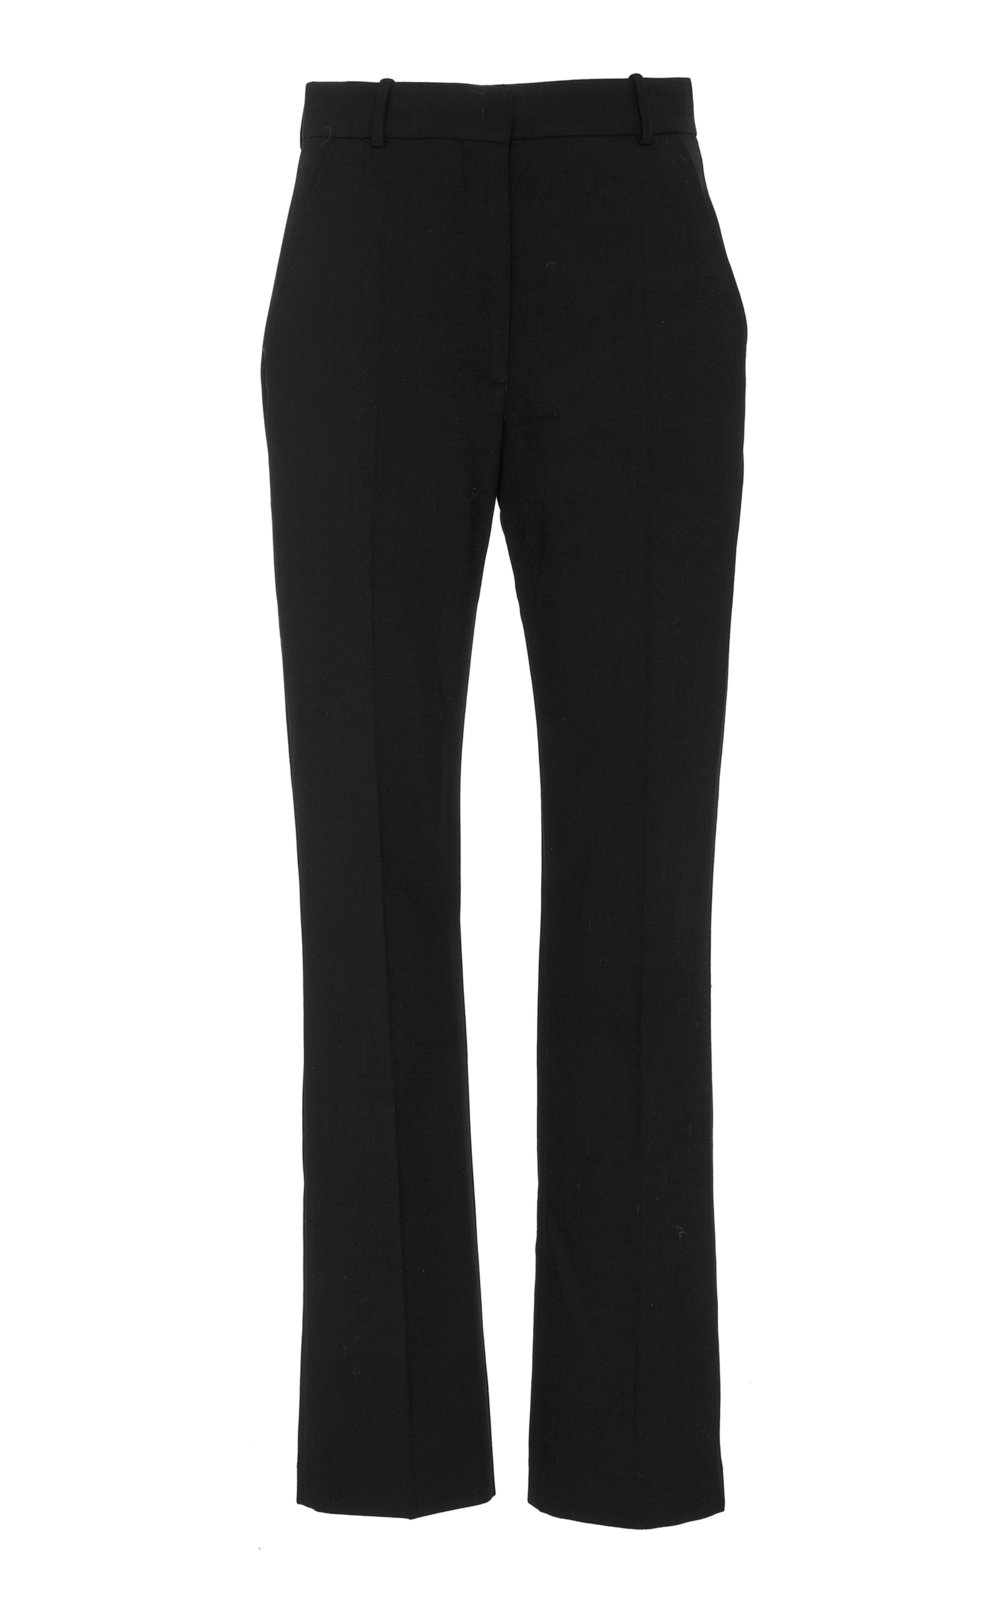 Amaryllis Tailored Wool Pants - BLACK  Sharply cut, these classic Wool pants feature a high waistline and fly closure. The straight shape provides a contemporary tailored feel. Wear yours with a matching jacket or as a sharp separate.